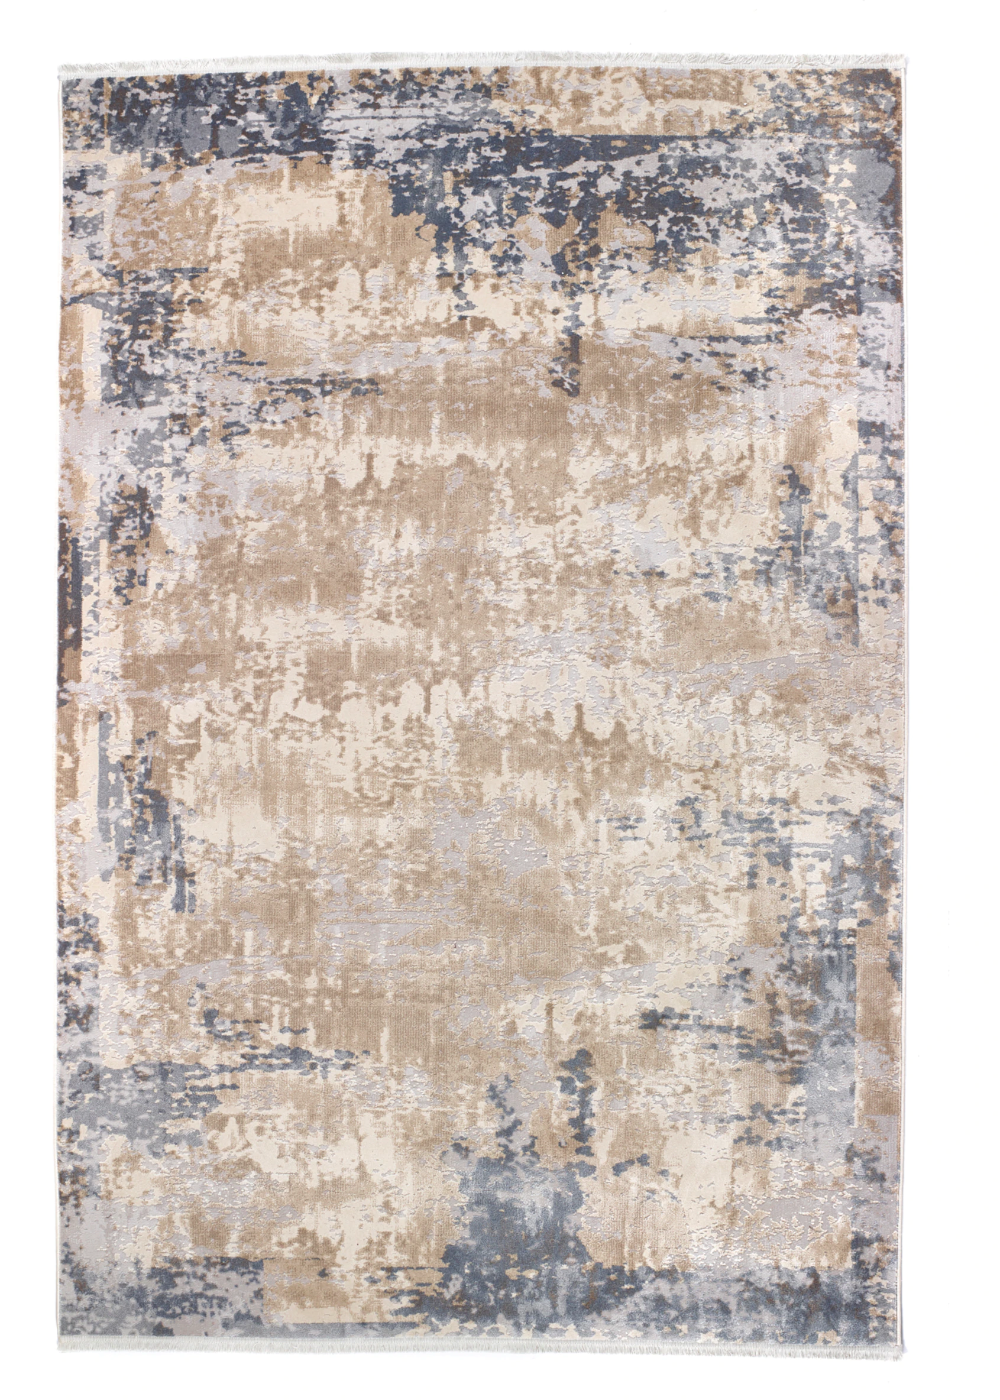 Etched Fringe Rug Small Grey In